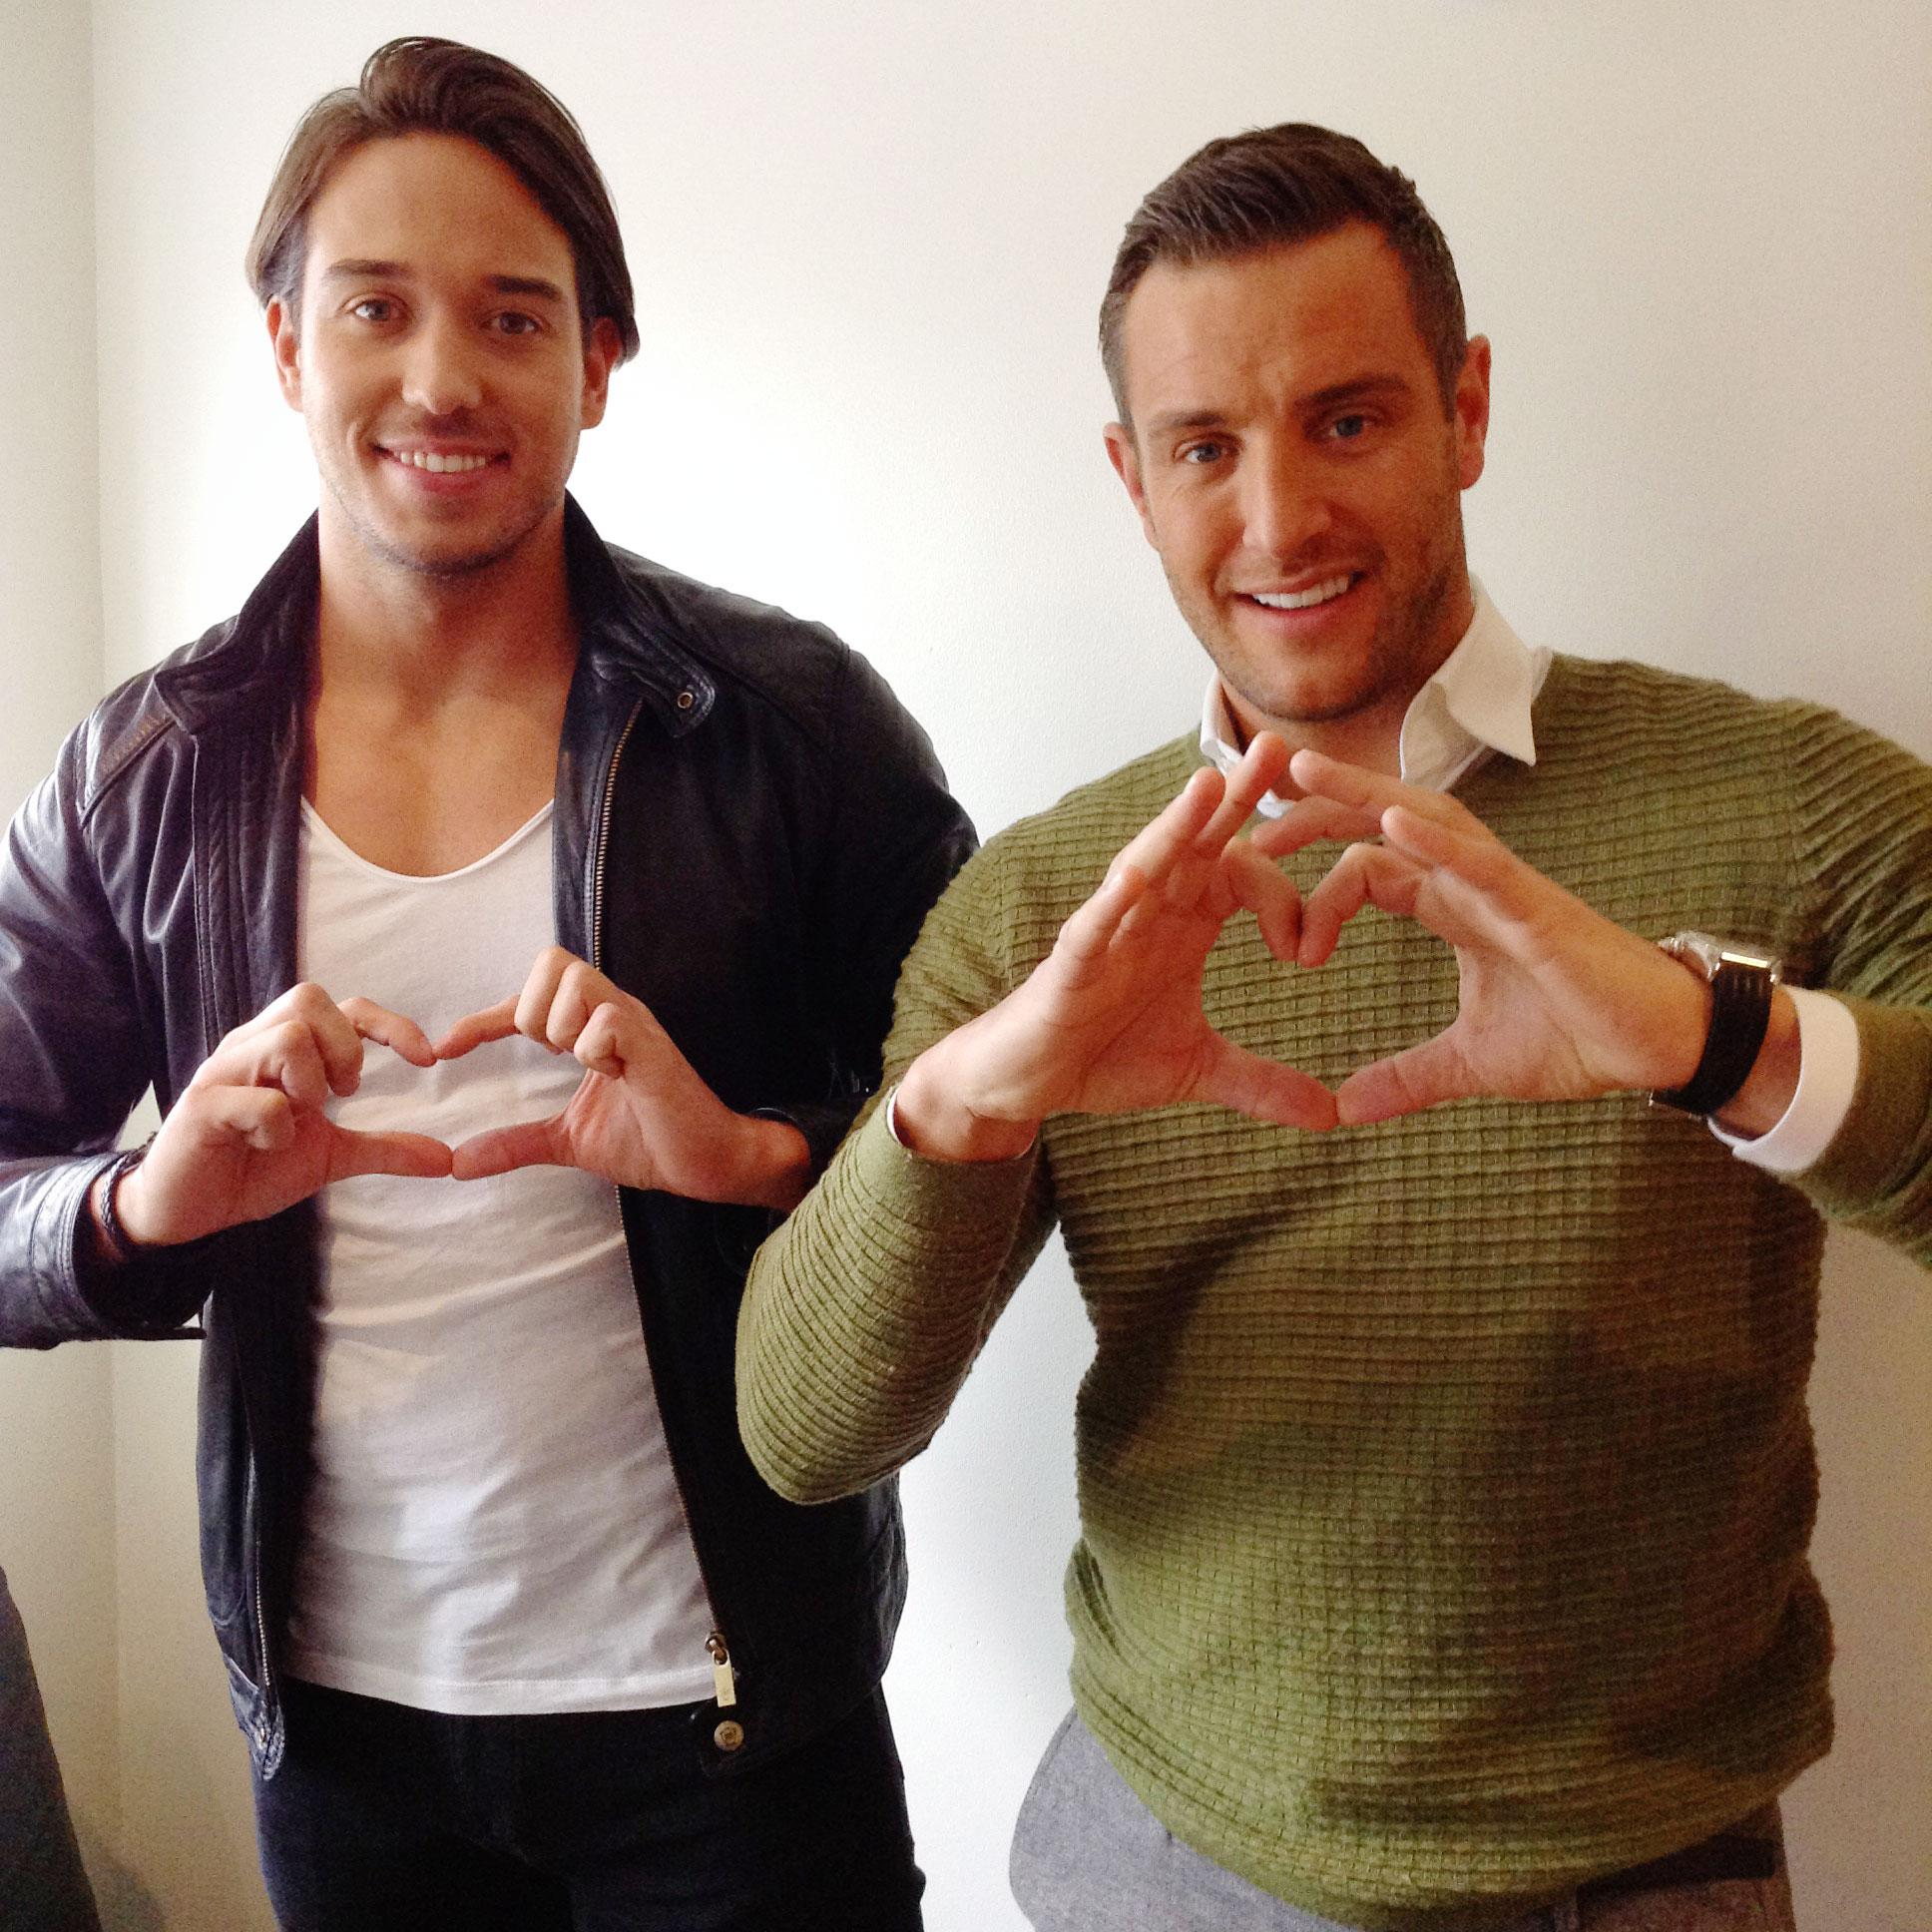 RT @ITVBe: We love Wednesdays 'cause it's #TOWIE day! 12 hours and counting - excited, @JamesLockie86 and @elliottwright_? http://t.co/VAl3…